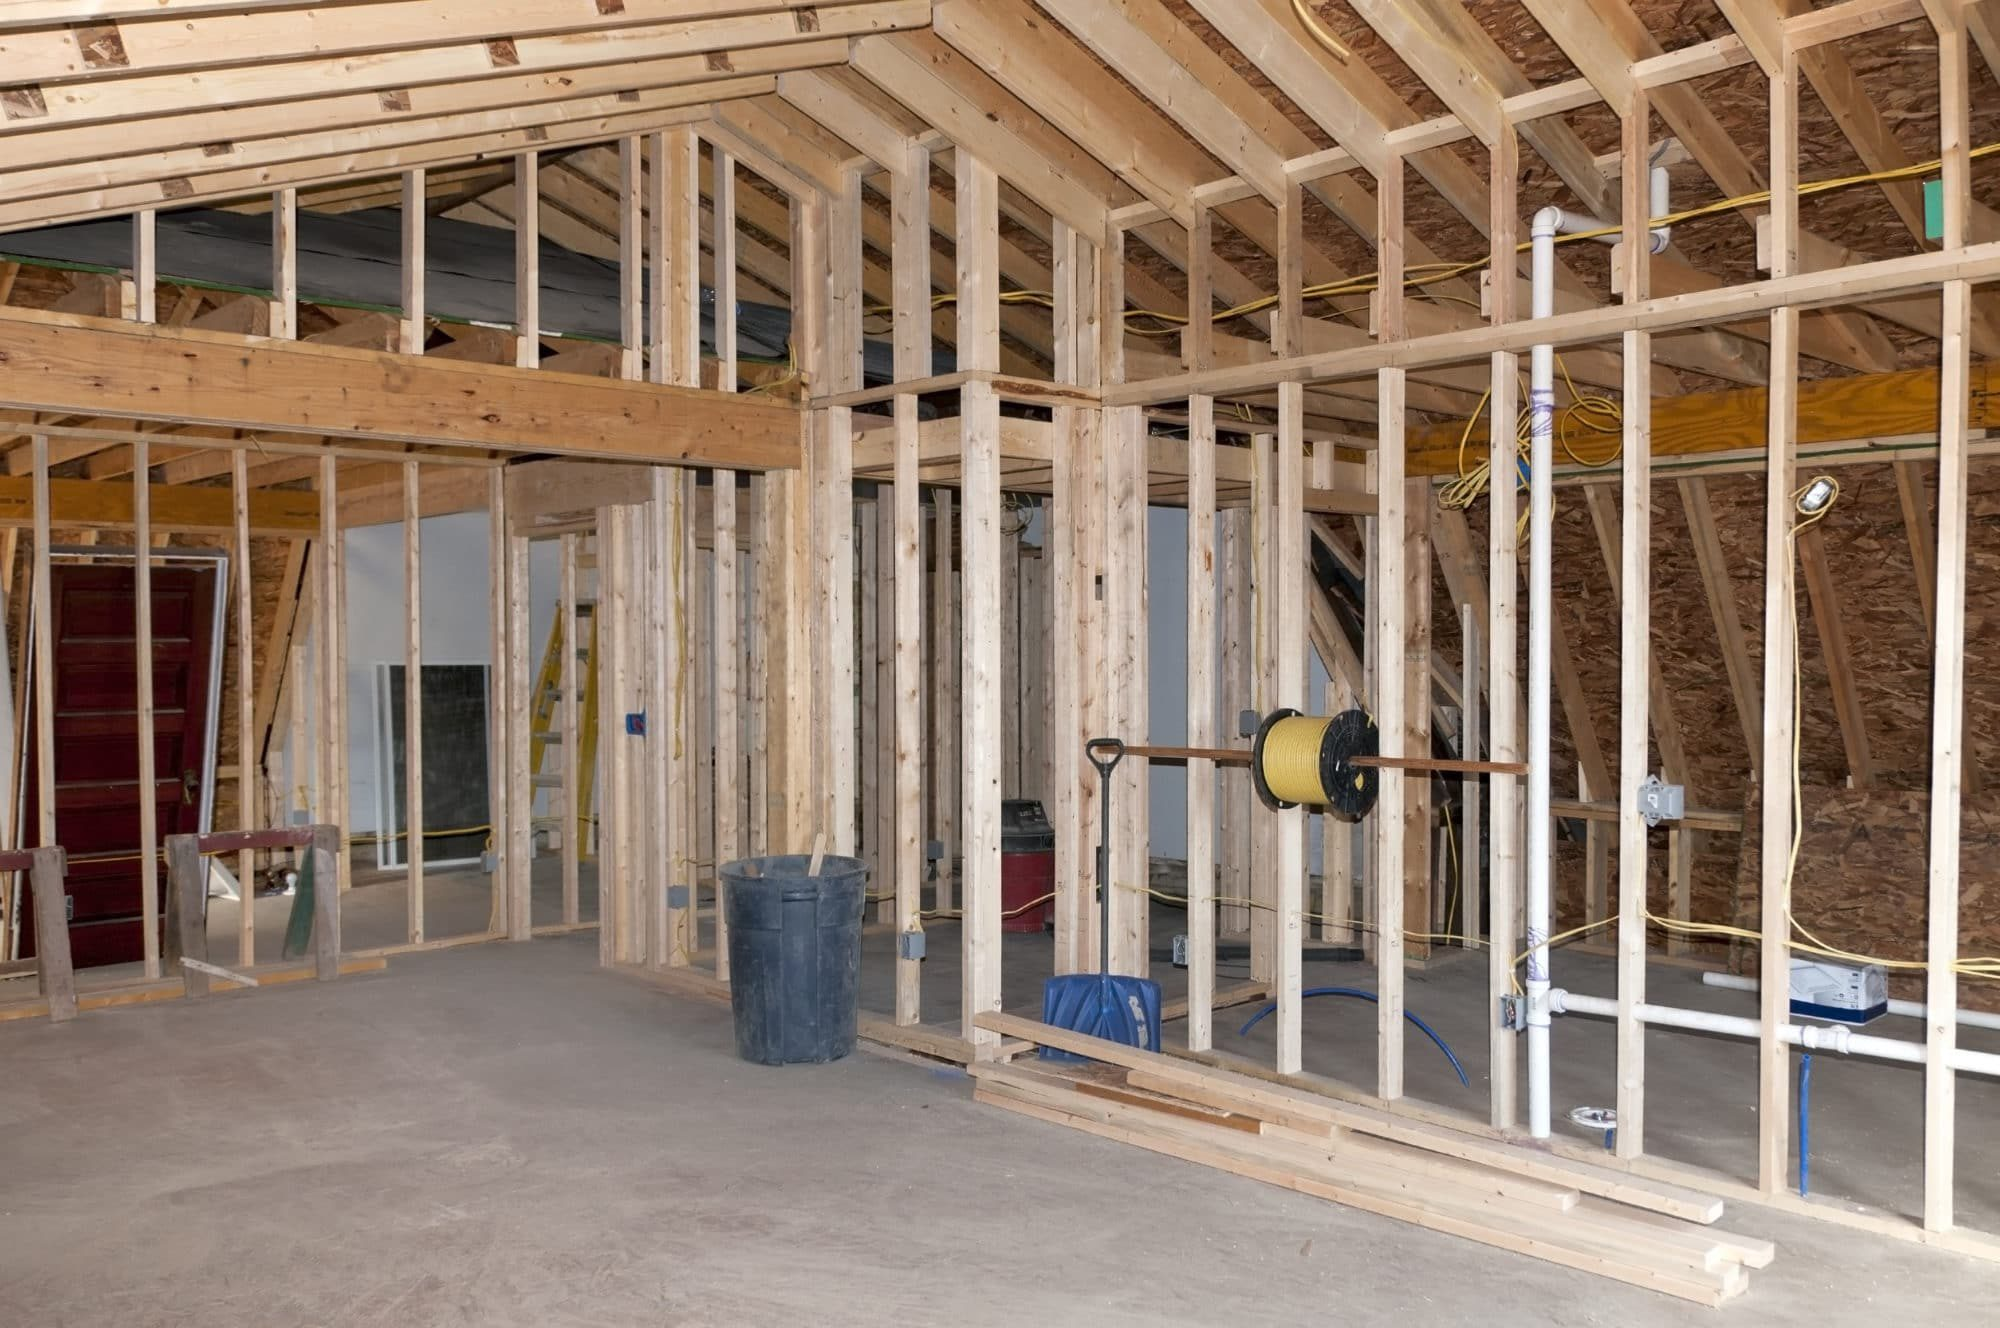 Just completed framing room addition to an existing home